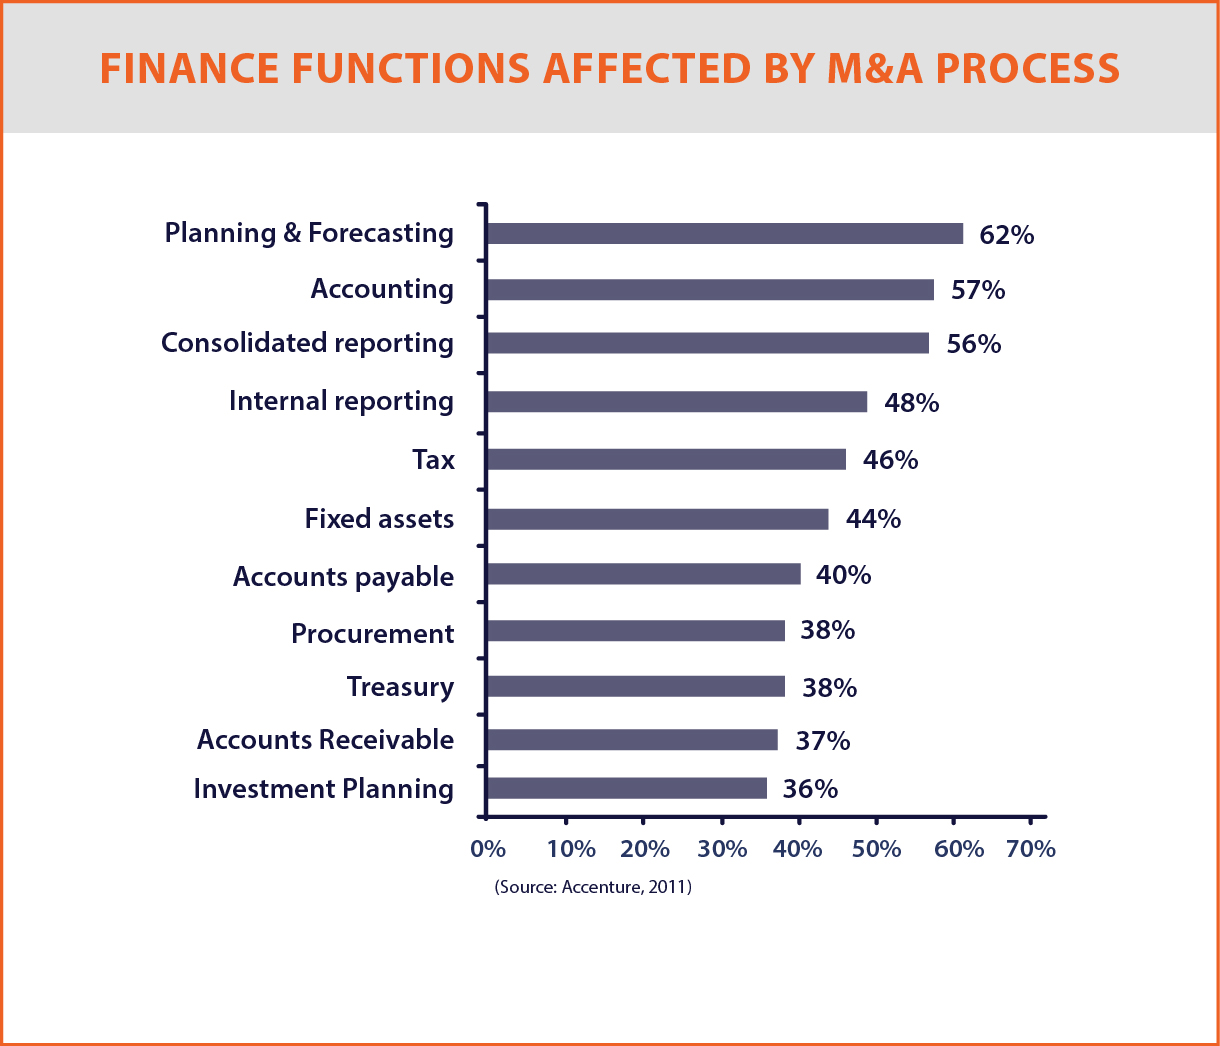 8 Steps To Finance & Accounting (F&A) Integration For A